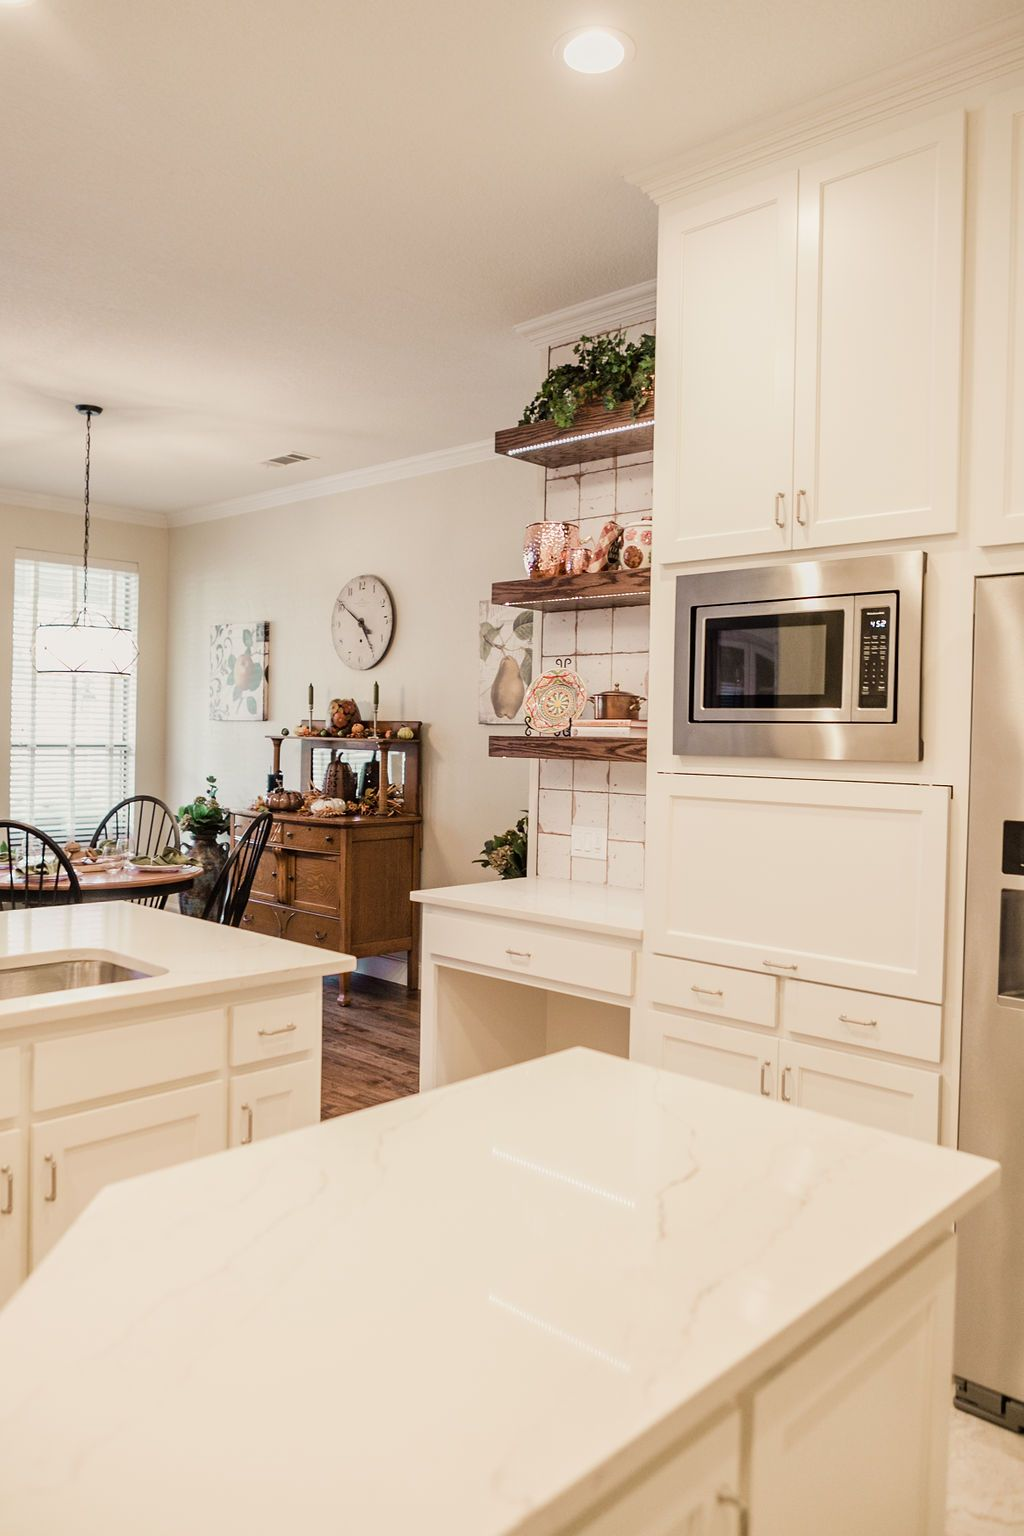 french country white kitchen remodel in 2020 country white kitchen white kitchen remodeling on kitchen remodel french country id=37948